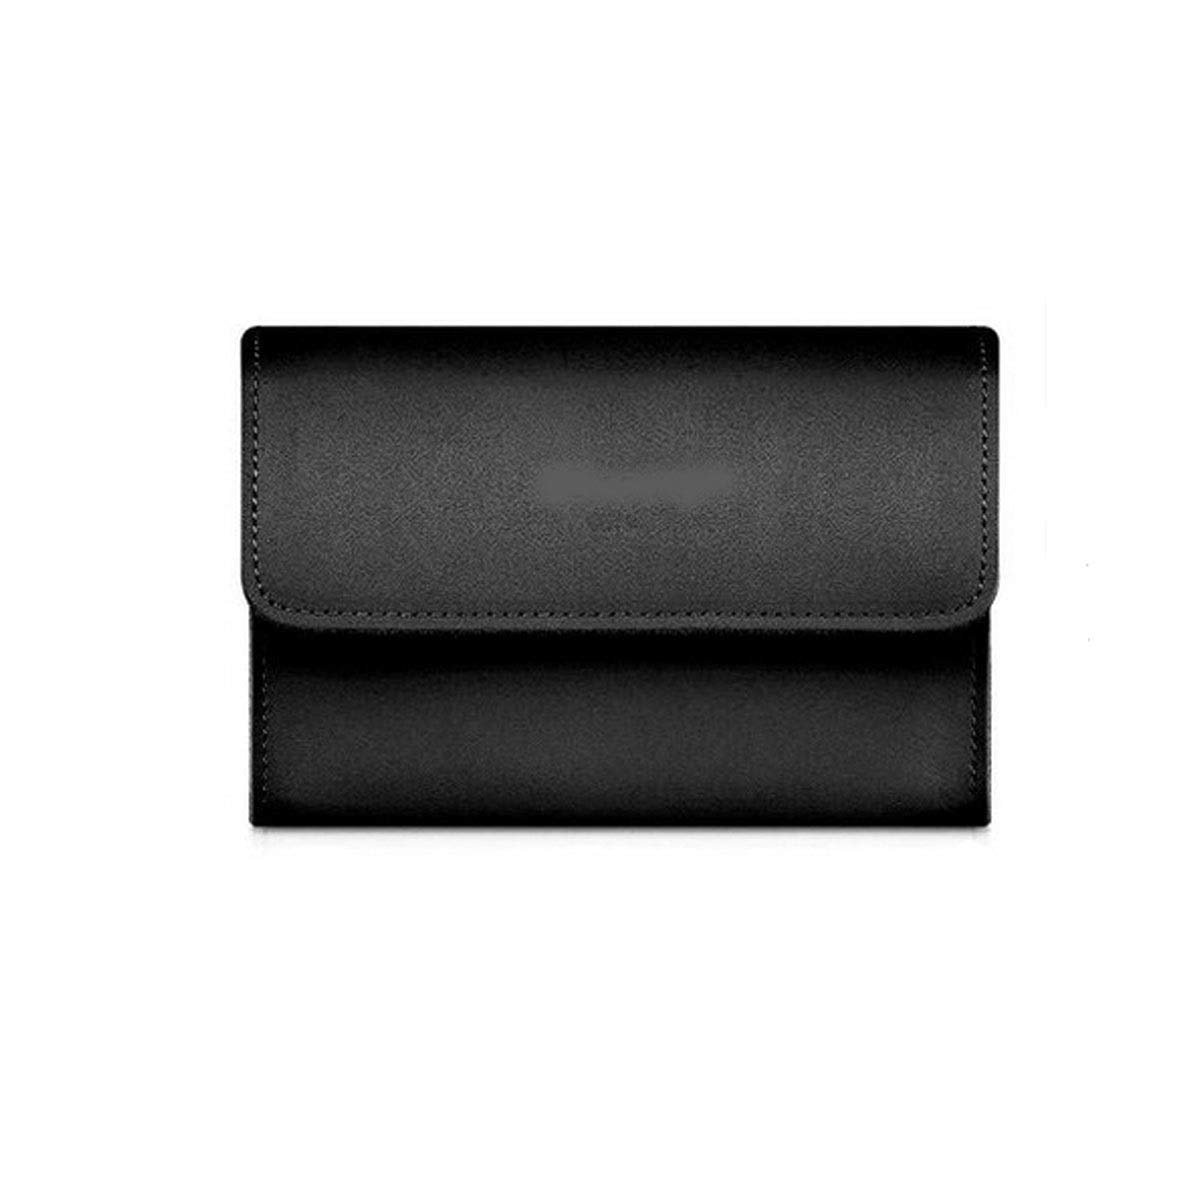 Jinnuotong Electronic Organizer,Cable Organizer,Accessories Organizer, Notebook Power Pack, Power Bag, Leather Storage Bag, Computer Accessories Bag,Accessory Storage, Portable and Durable Portable